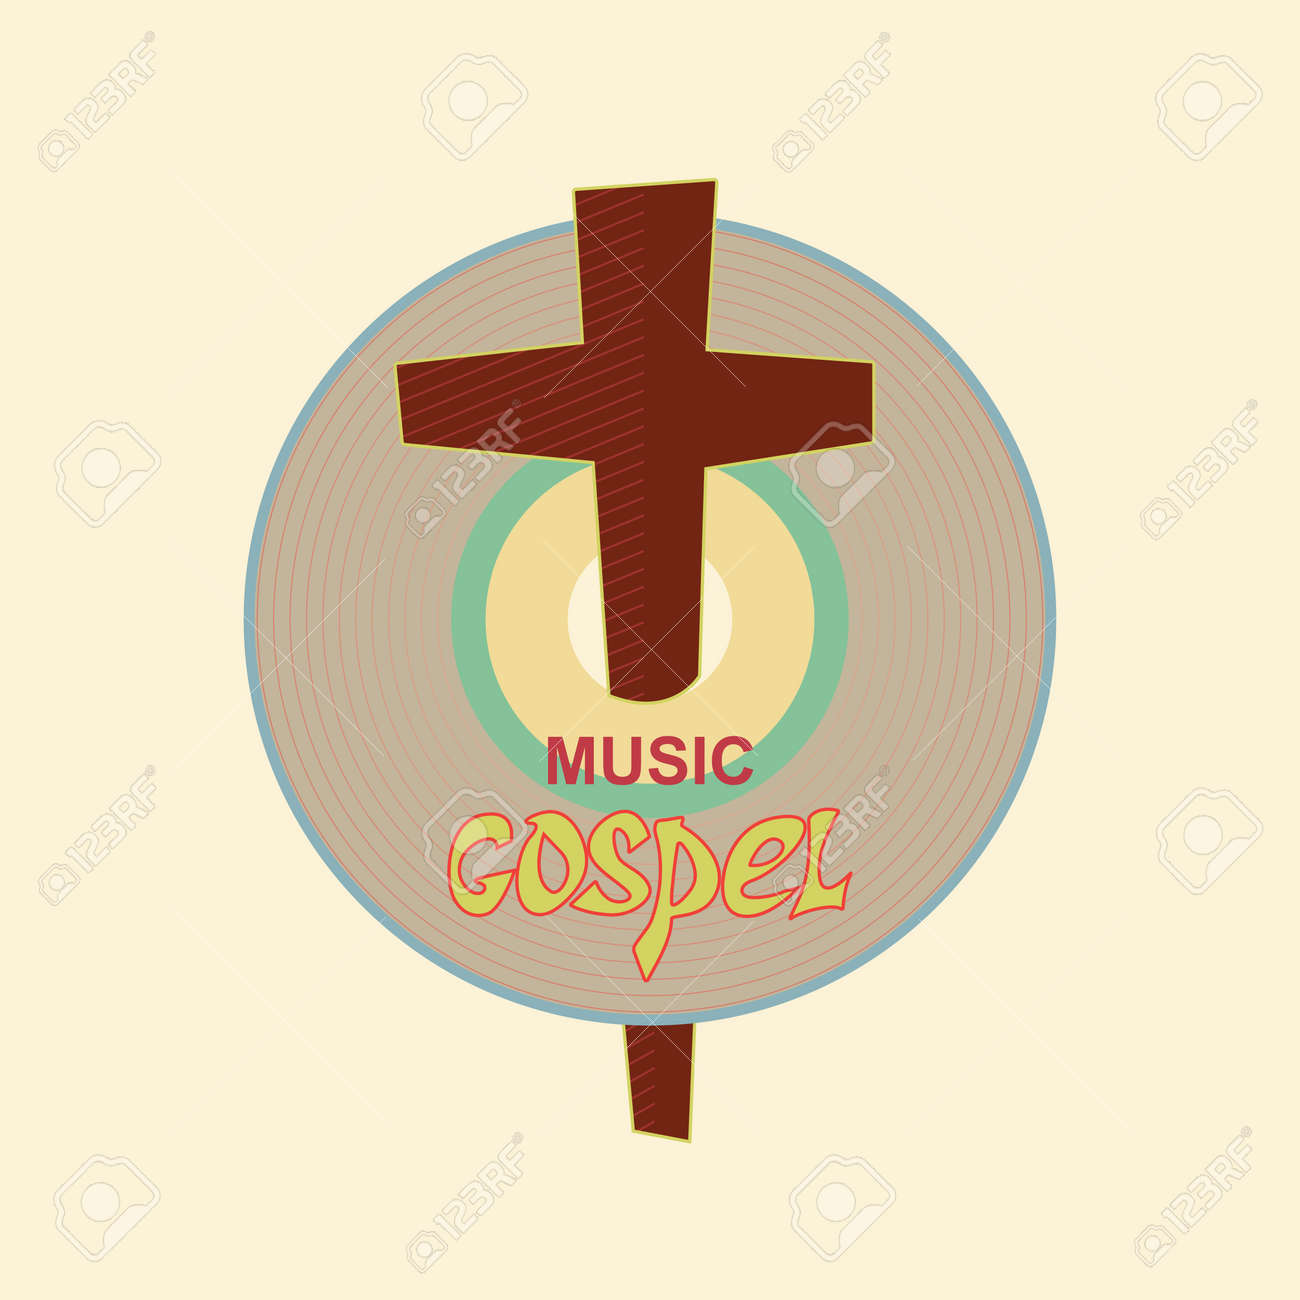 Christian emblem with the image of the music cd and the cross christian emblem with the image of the music cd and the cross symbolizes a christian biocorpaavc